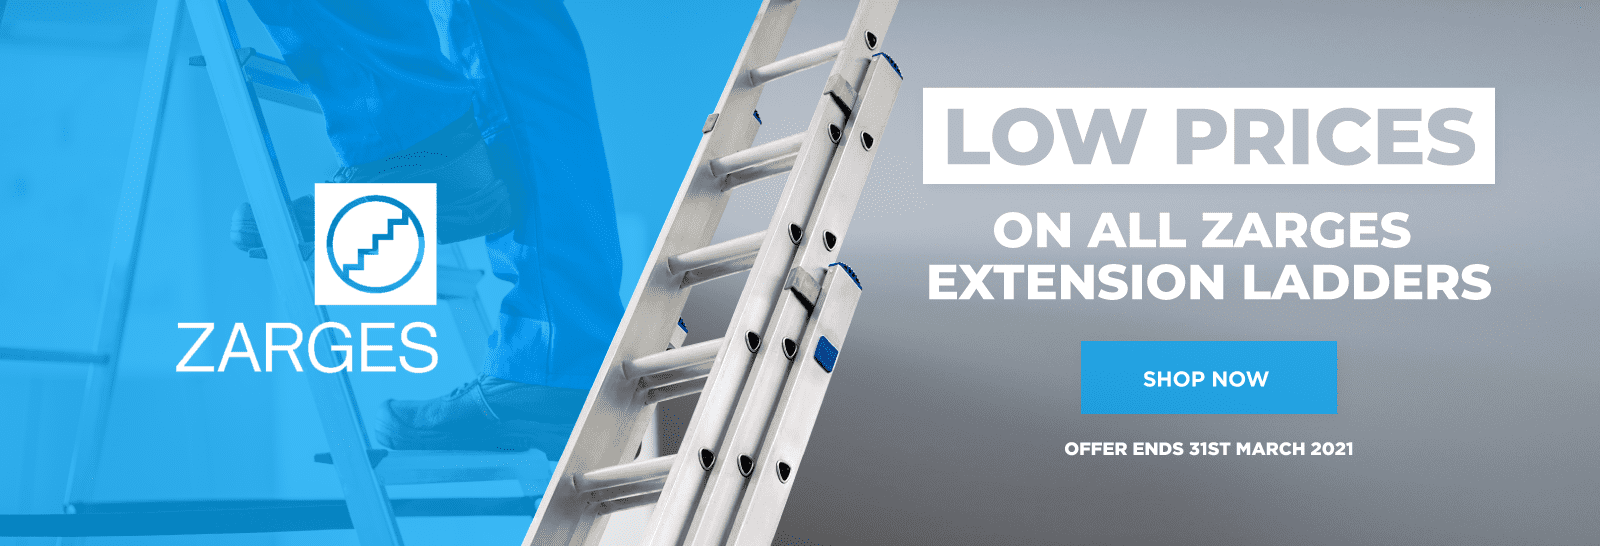 Low Prices On All Zarges Extension Ladders